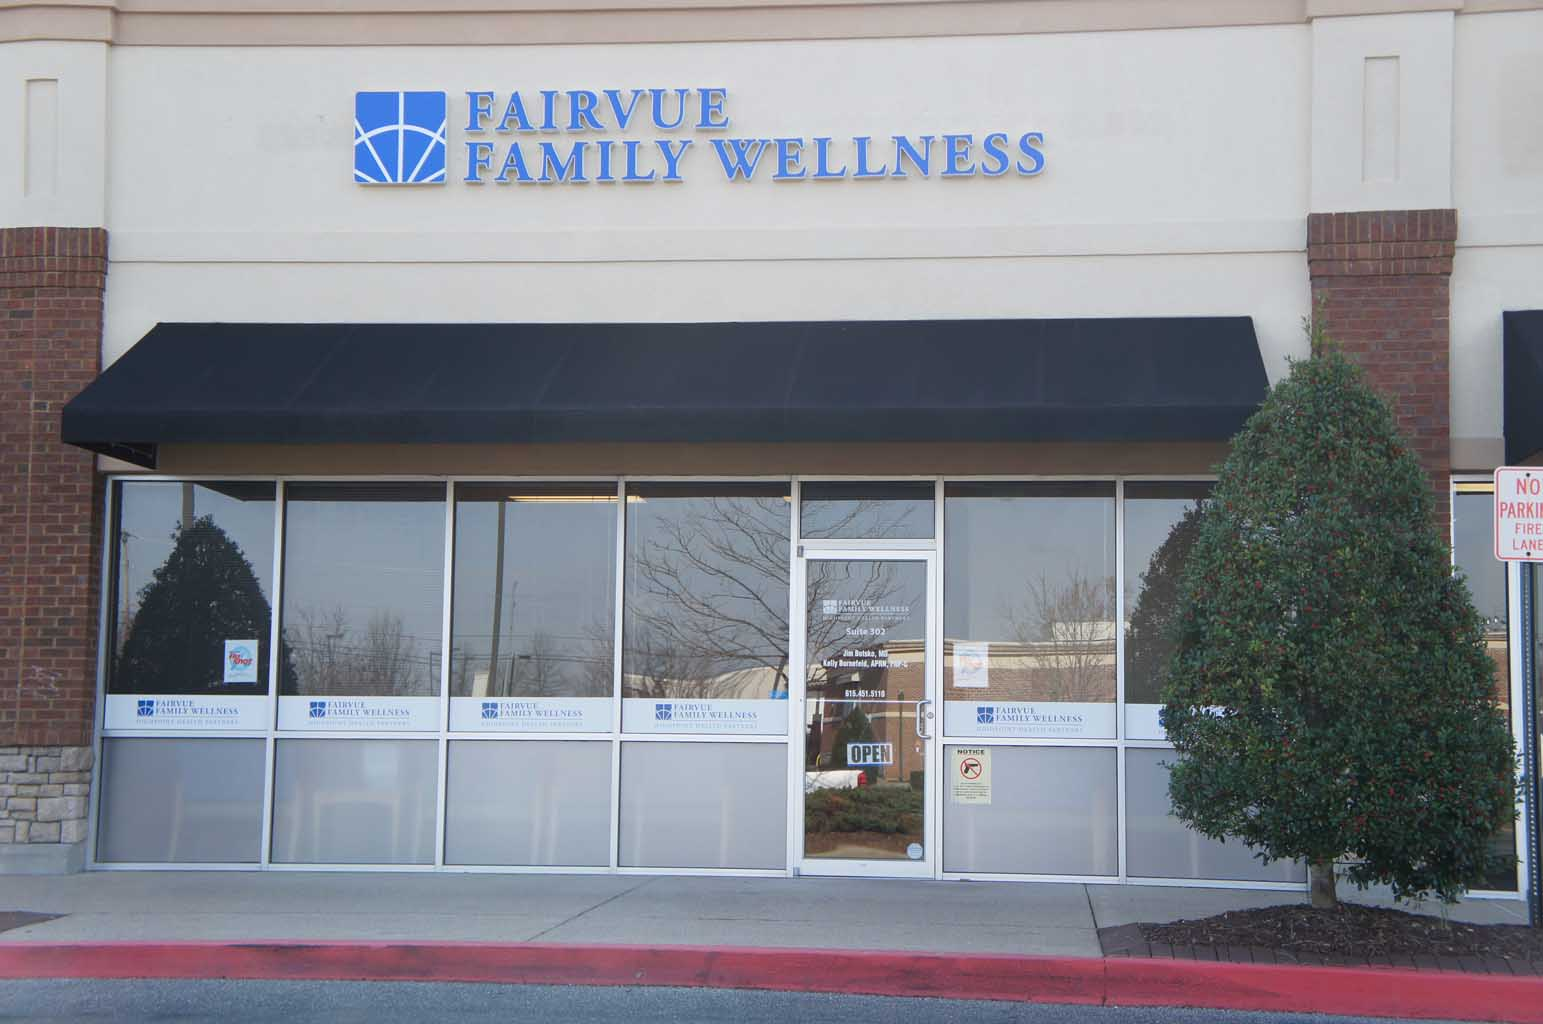 Fairvue Family Wellness, Gallatin TN - Front Entrance